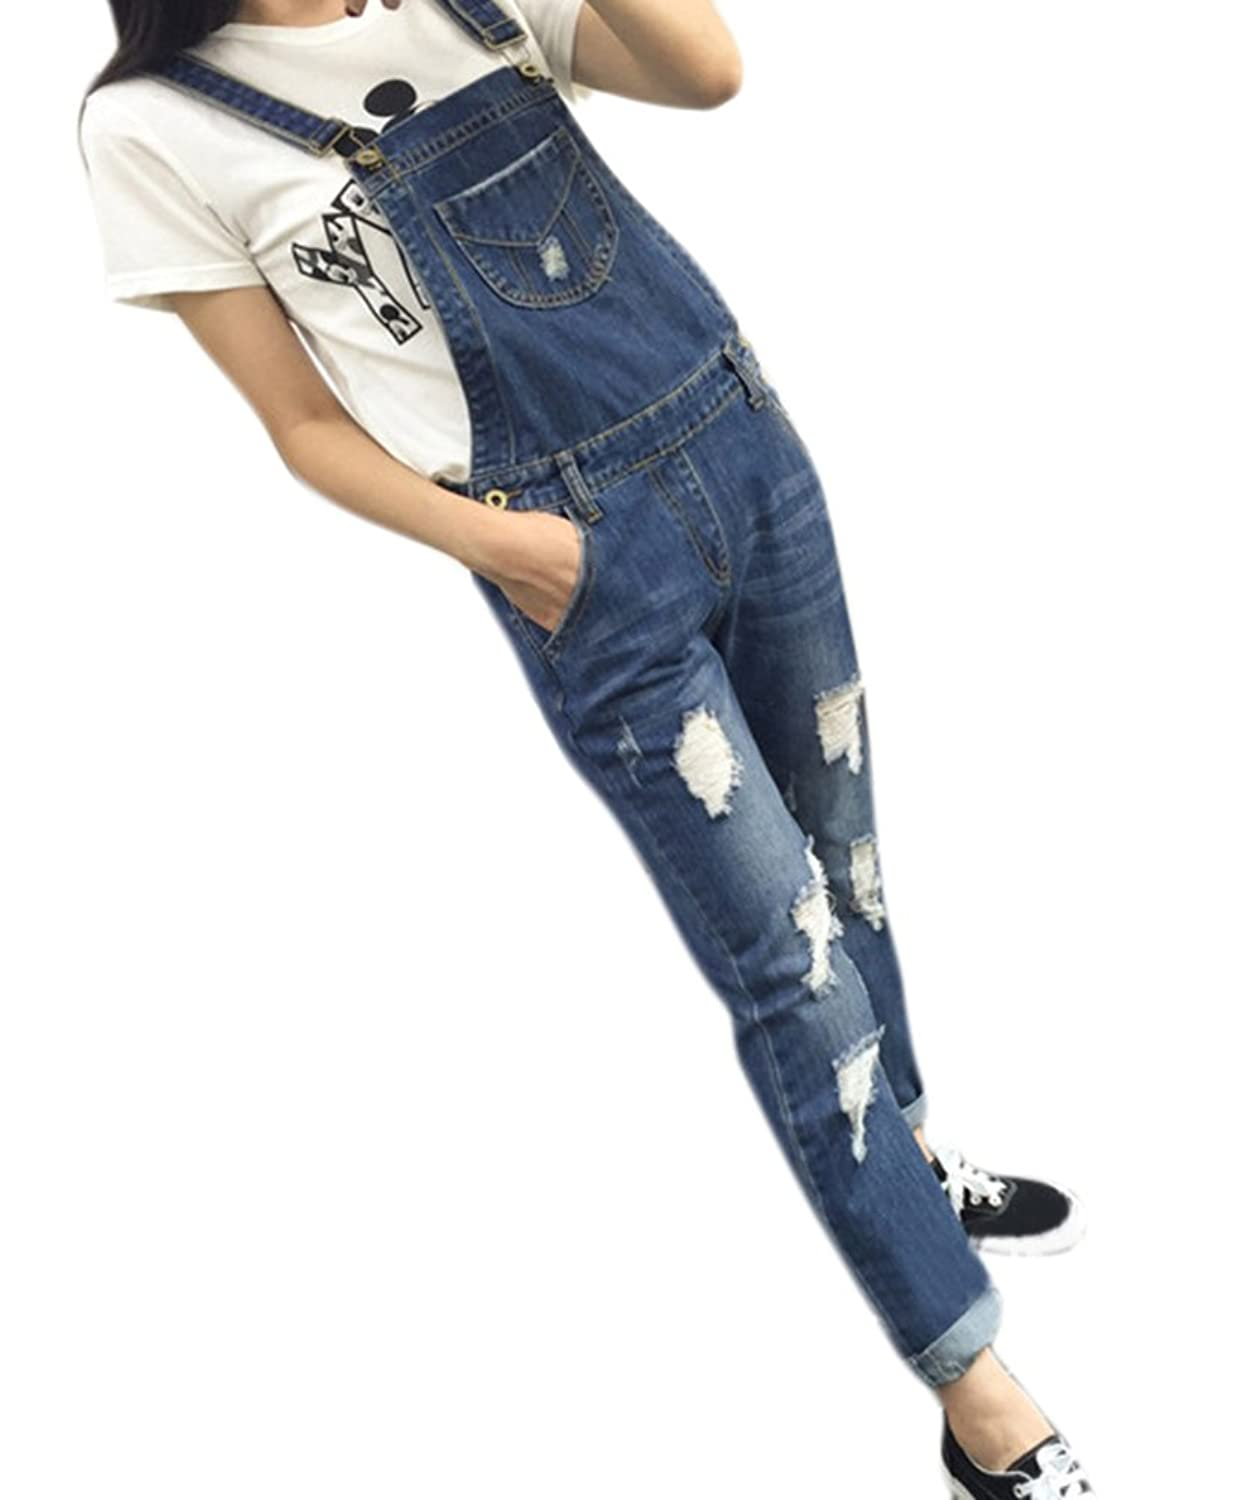 Ace Women鈥檚 Teen-girls Fashion Relax Slim Fit Pencil Jeans Overalls Plus Size